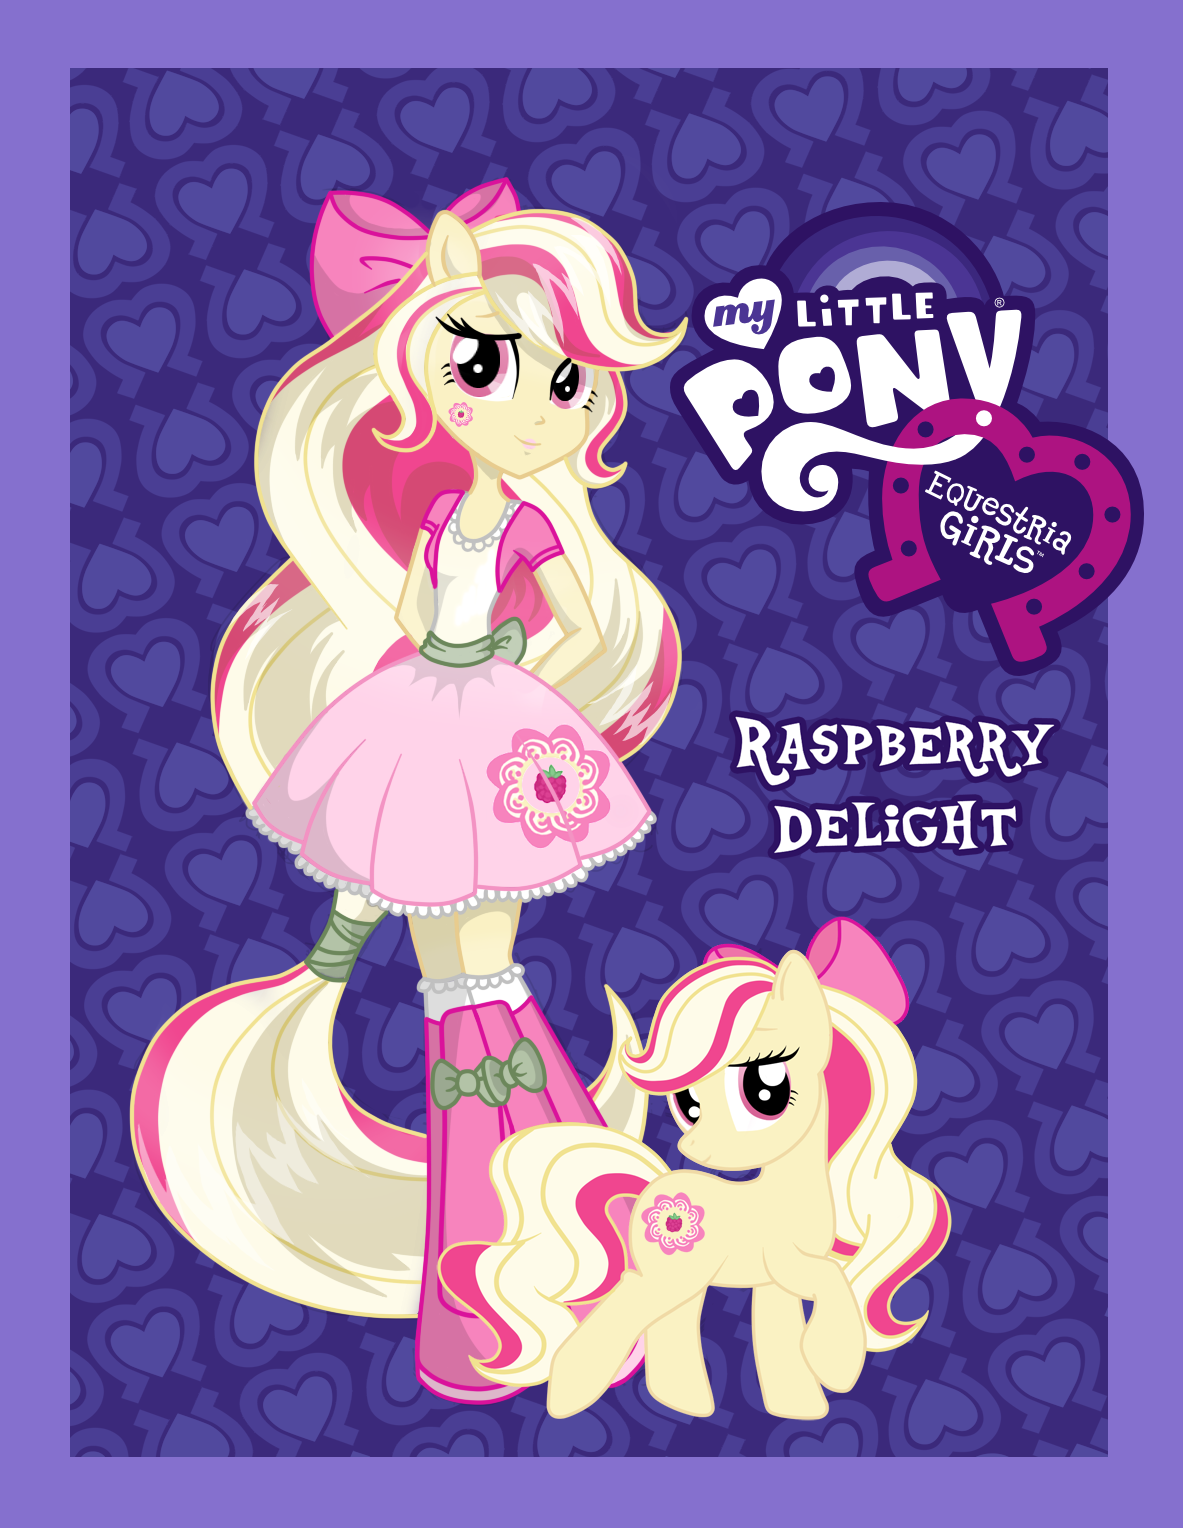 Free Download Equestria Girls Oc Raspberry Delight By